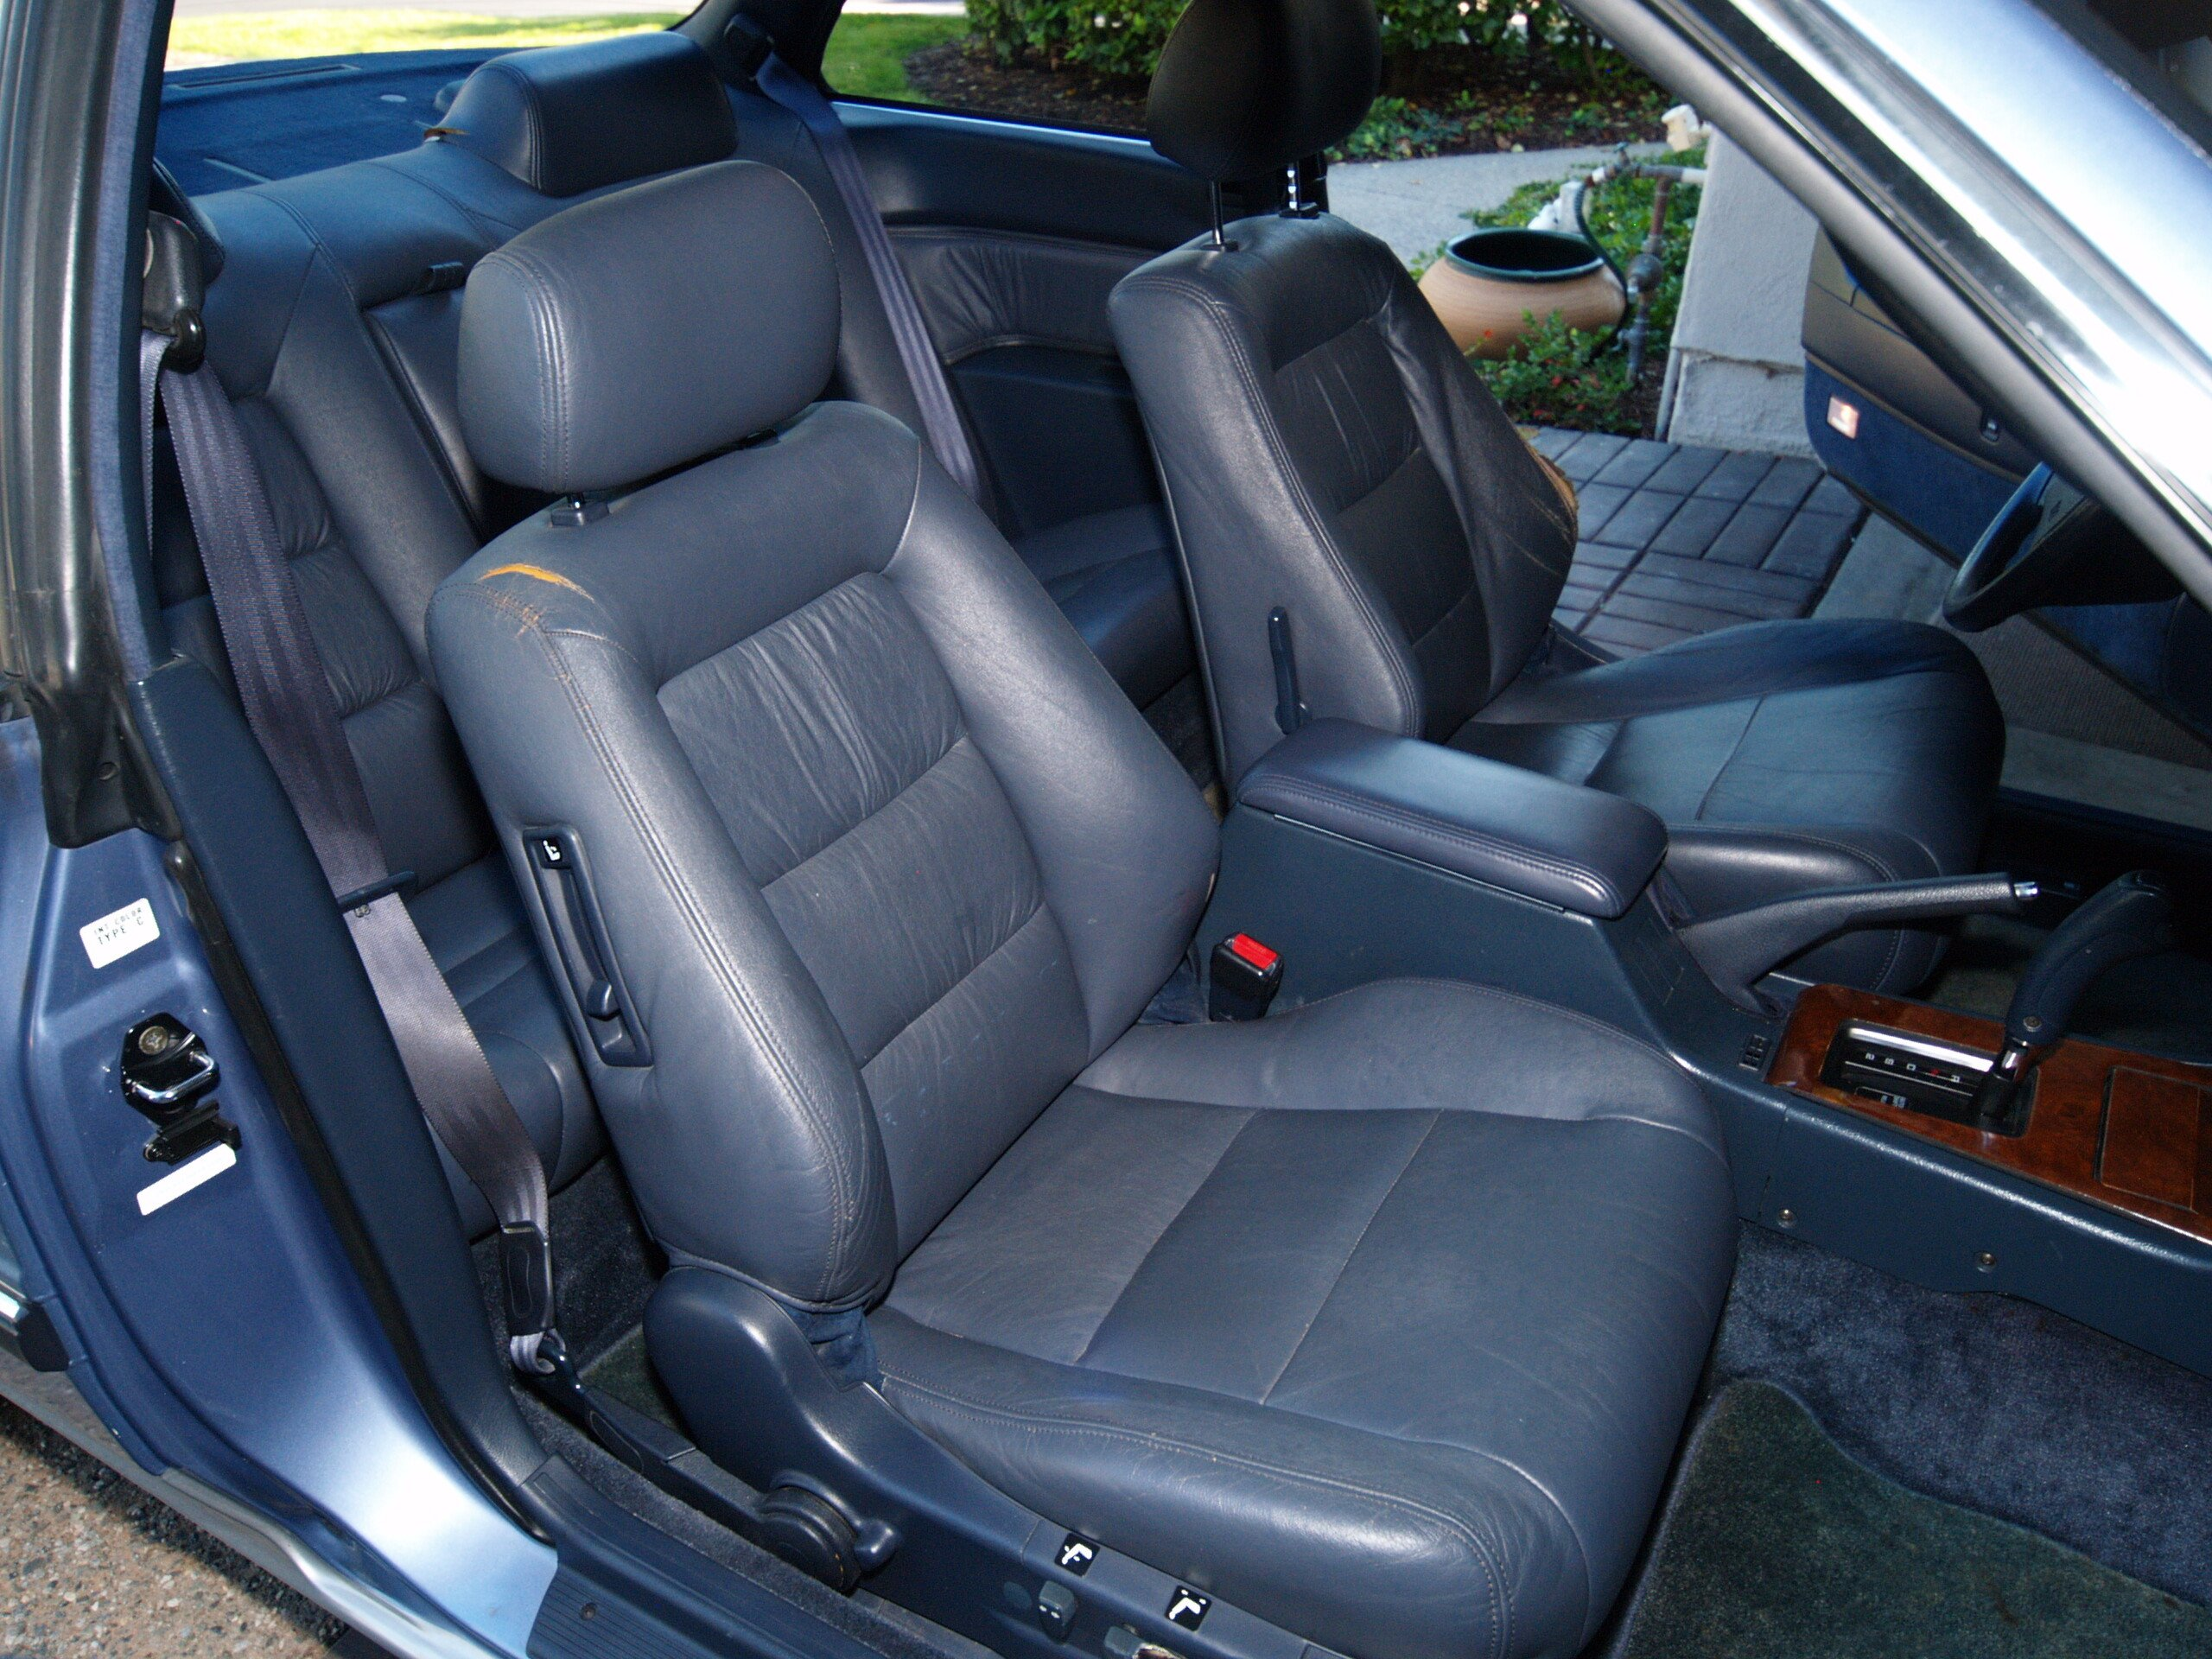 Acura Legend Seat Cover Manual Good Owner Guide Website - Acura legend 1992 for sale